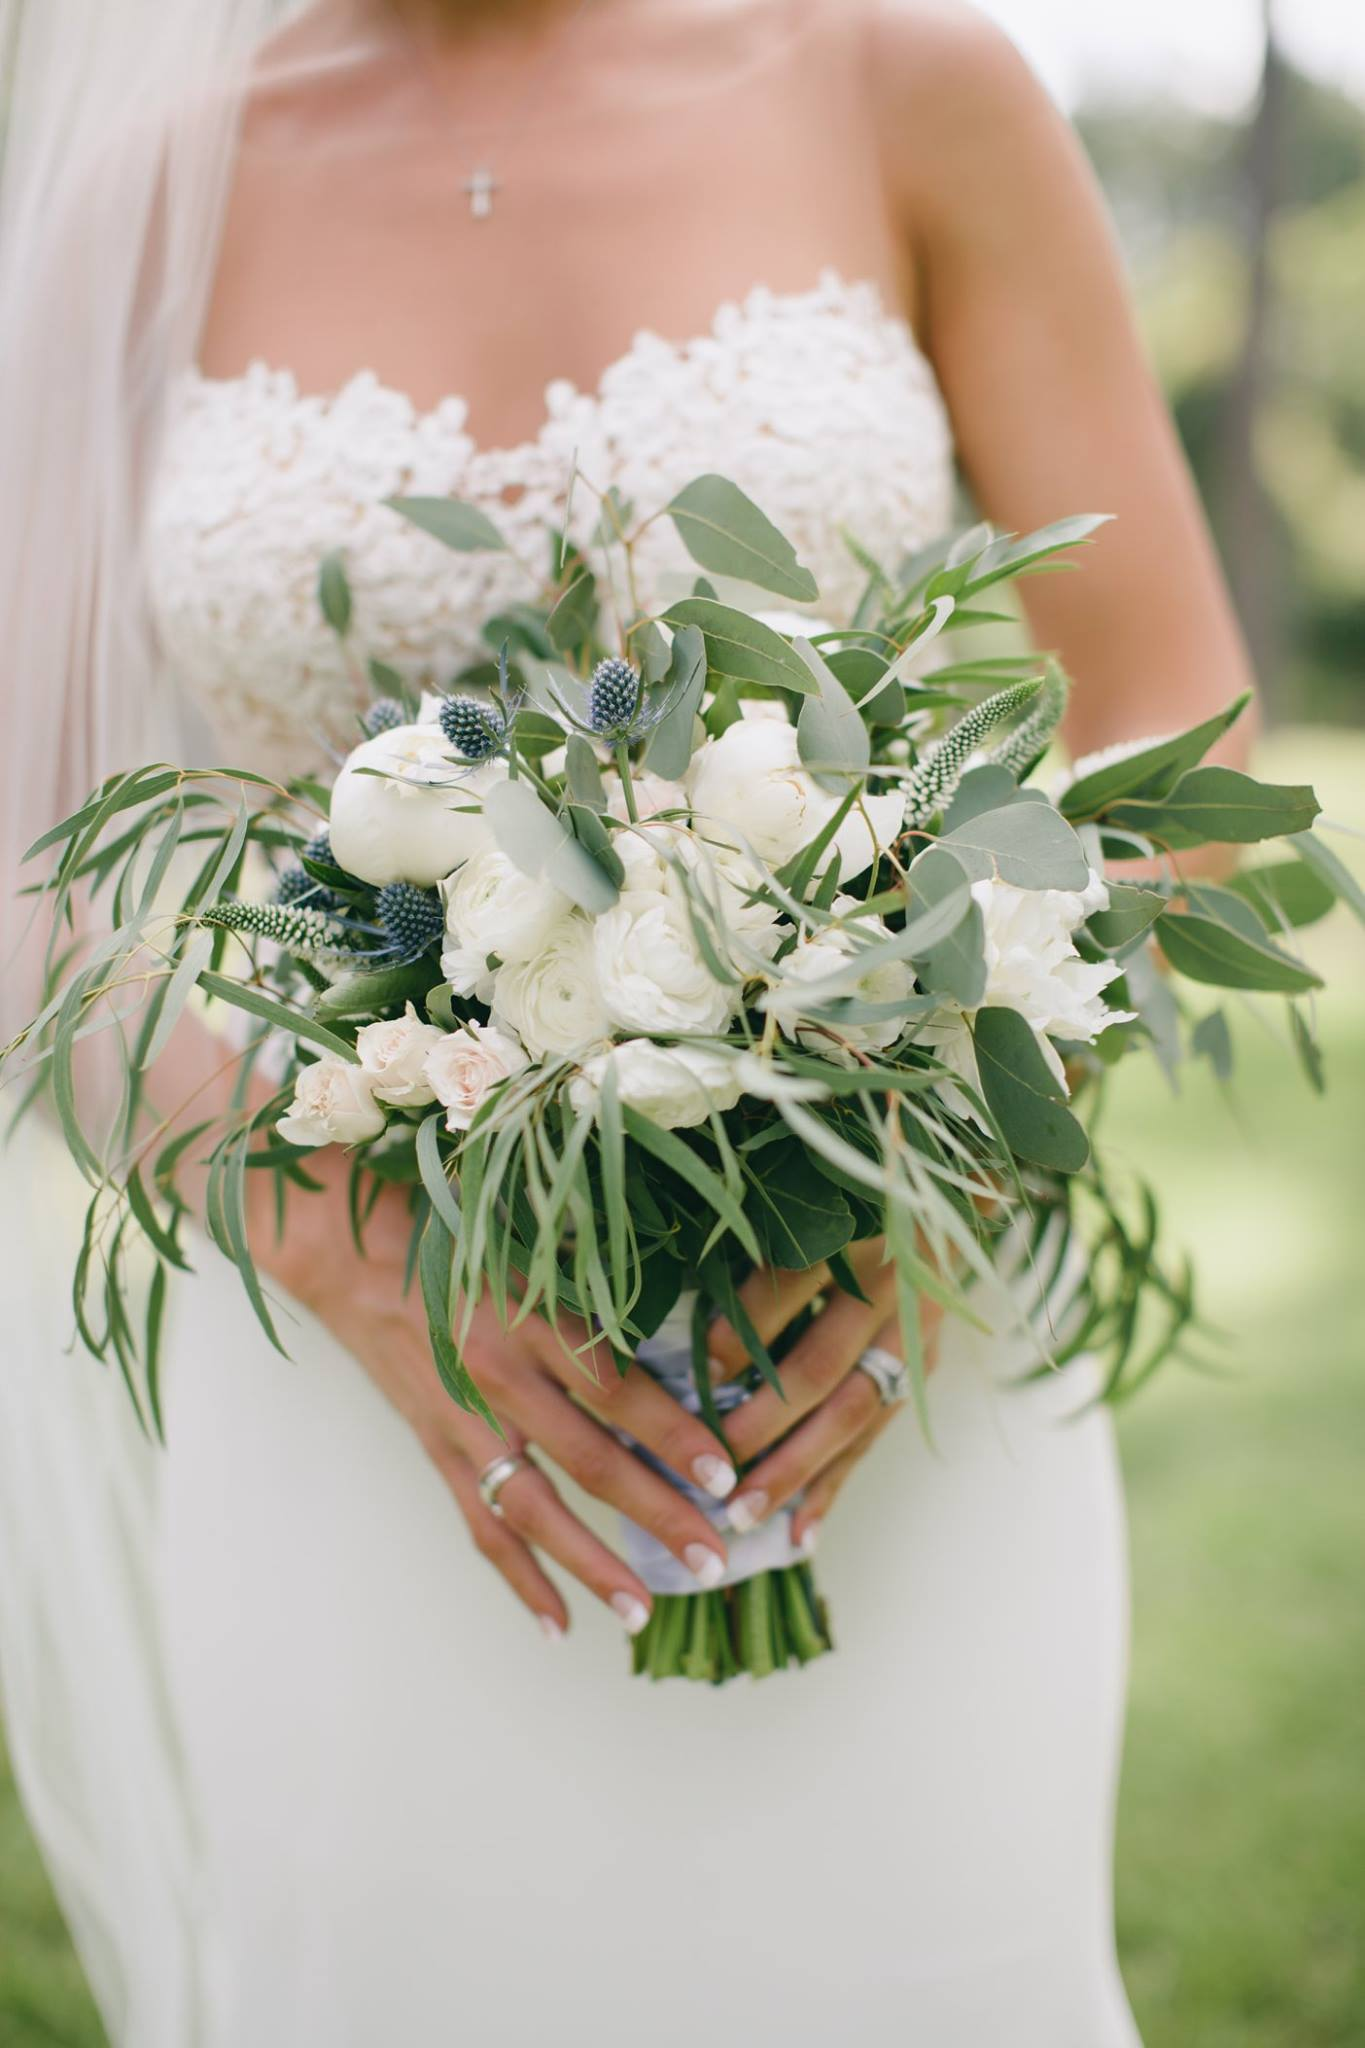 Organic Bridal Bouquet | At Last